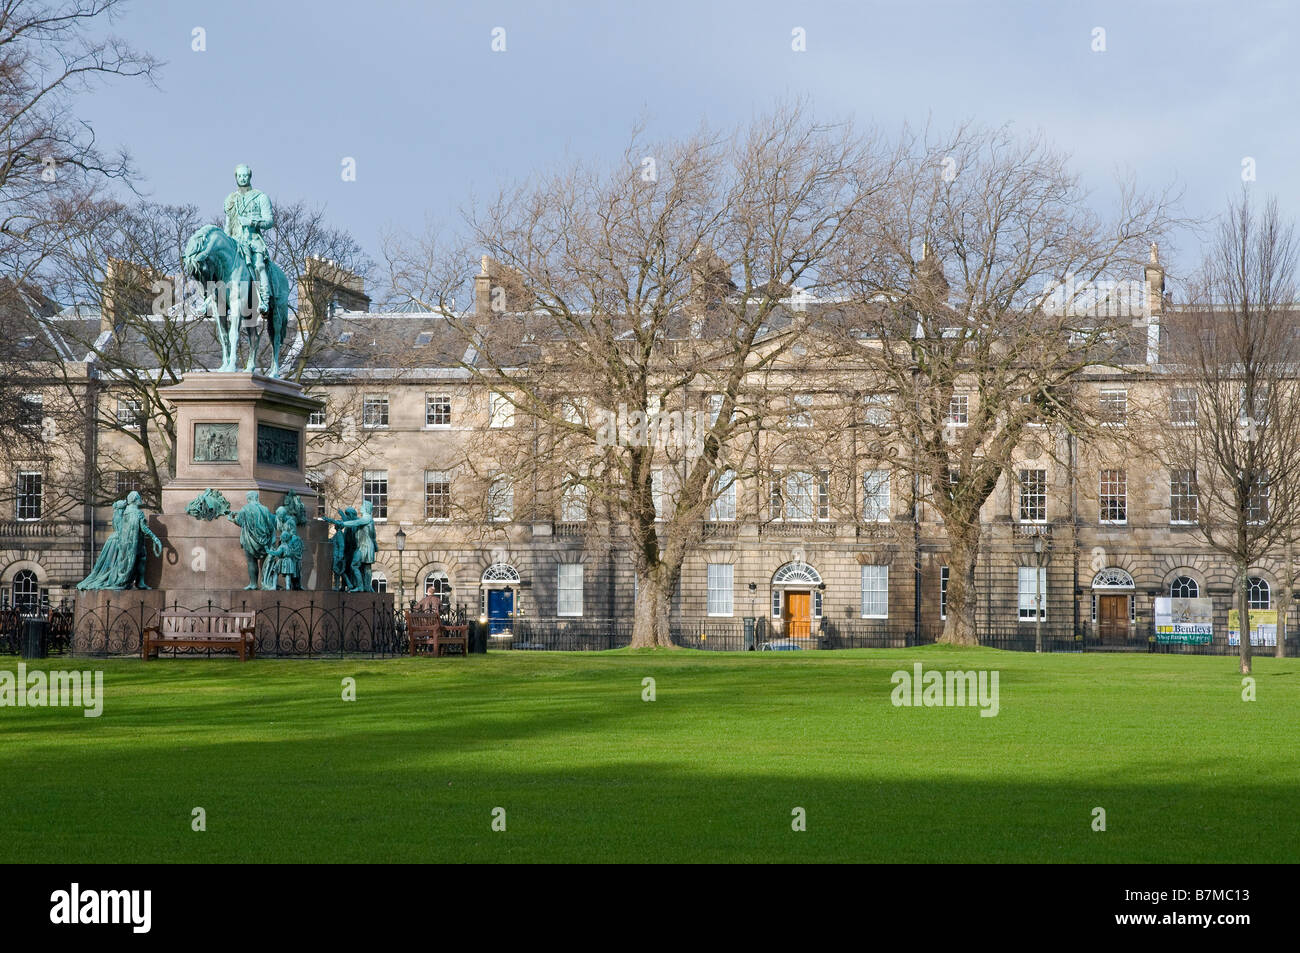 Charlotte Square in the New Town, Edinburgh. This is the location of the international Edinburgh Book Festival. - Stock Image